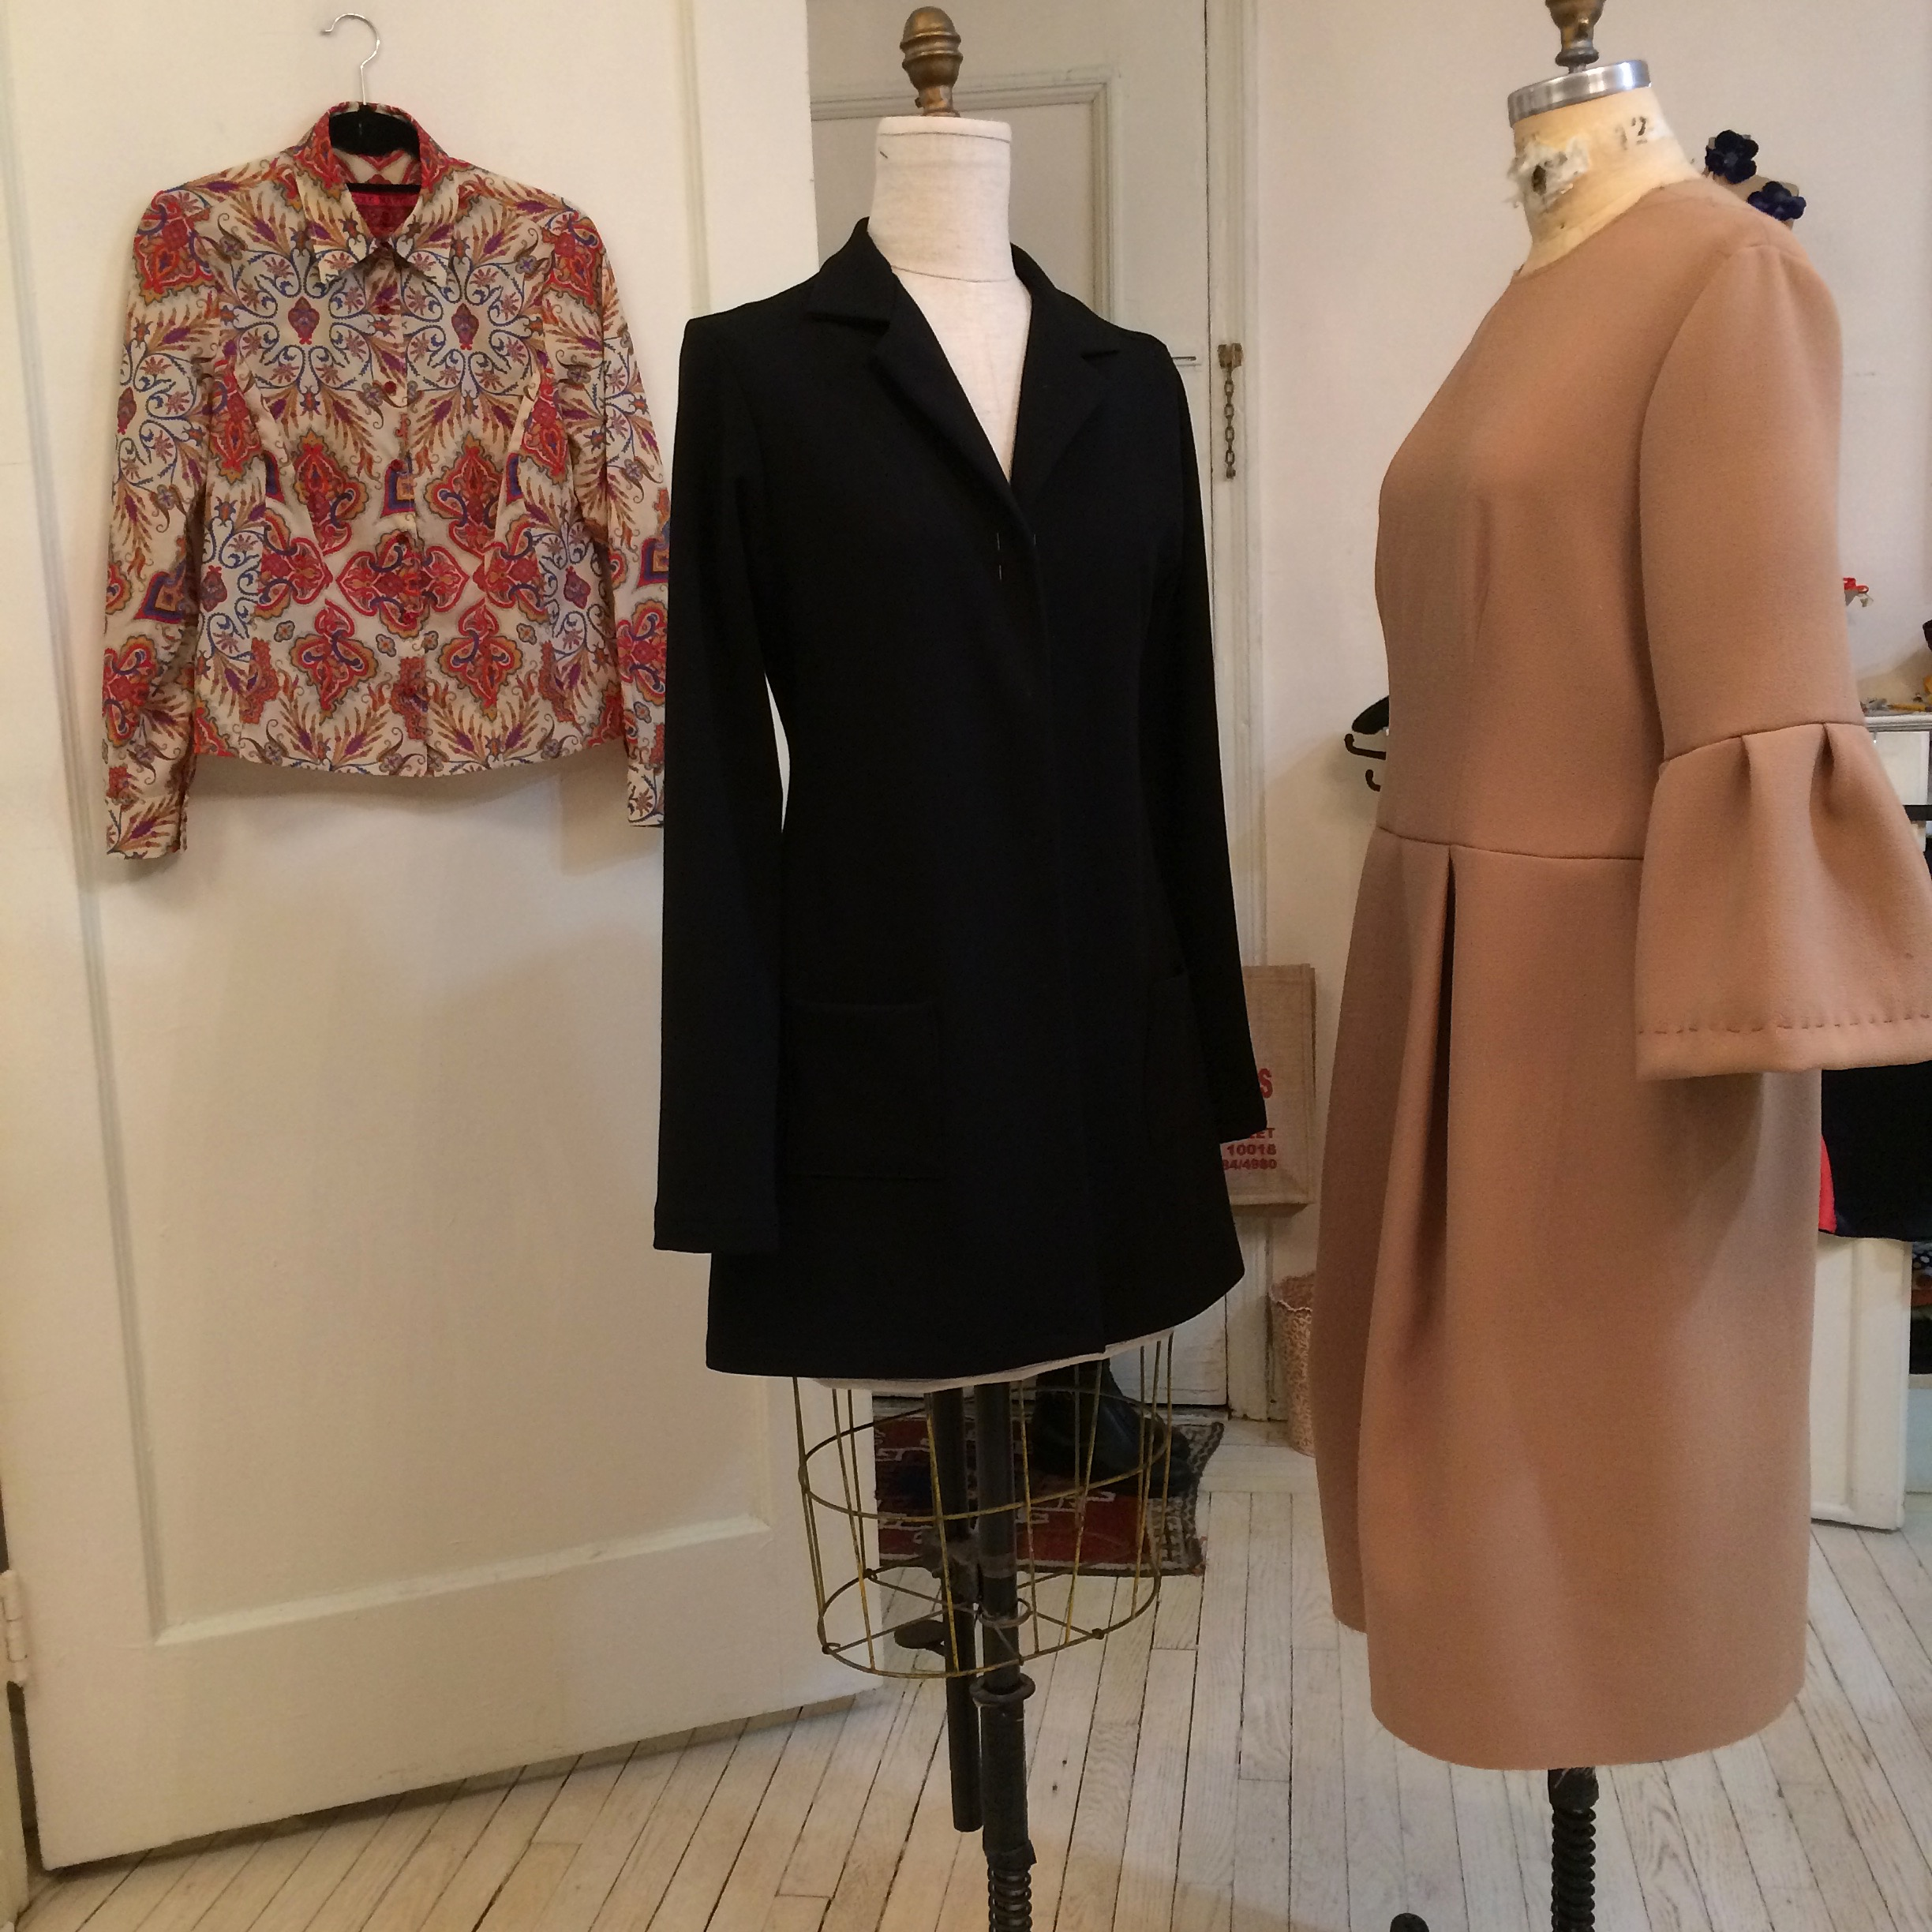 Liberty cotton blouse, Ponté knit jacket, camel wool crepe dress